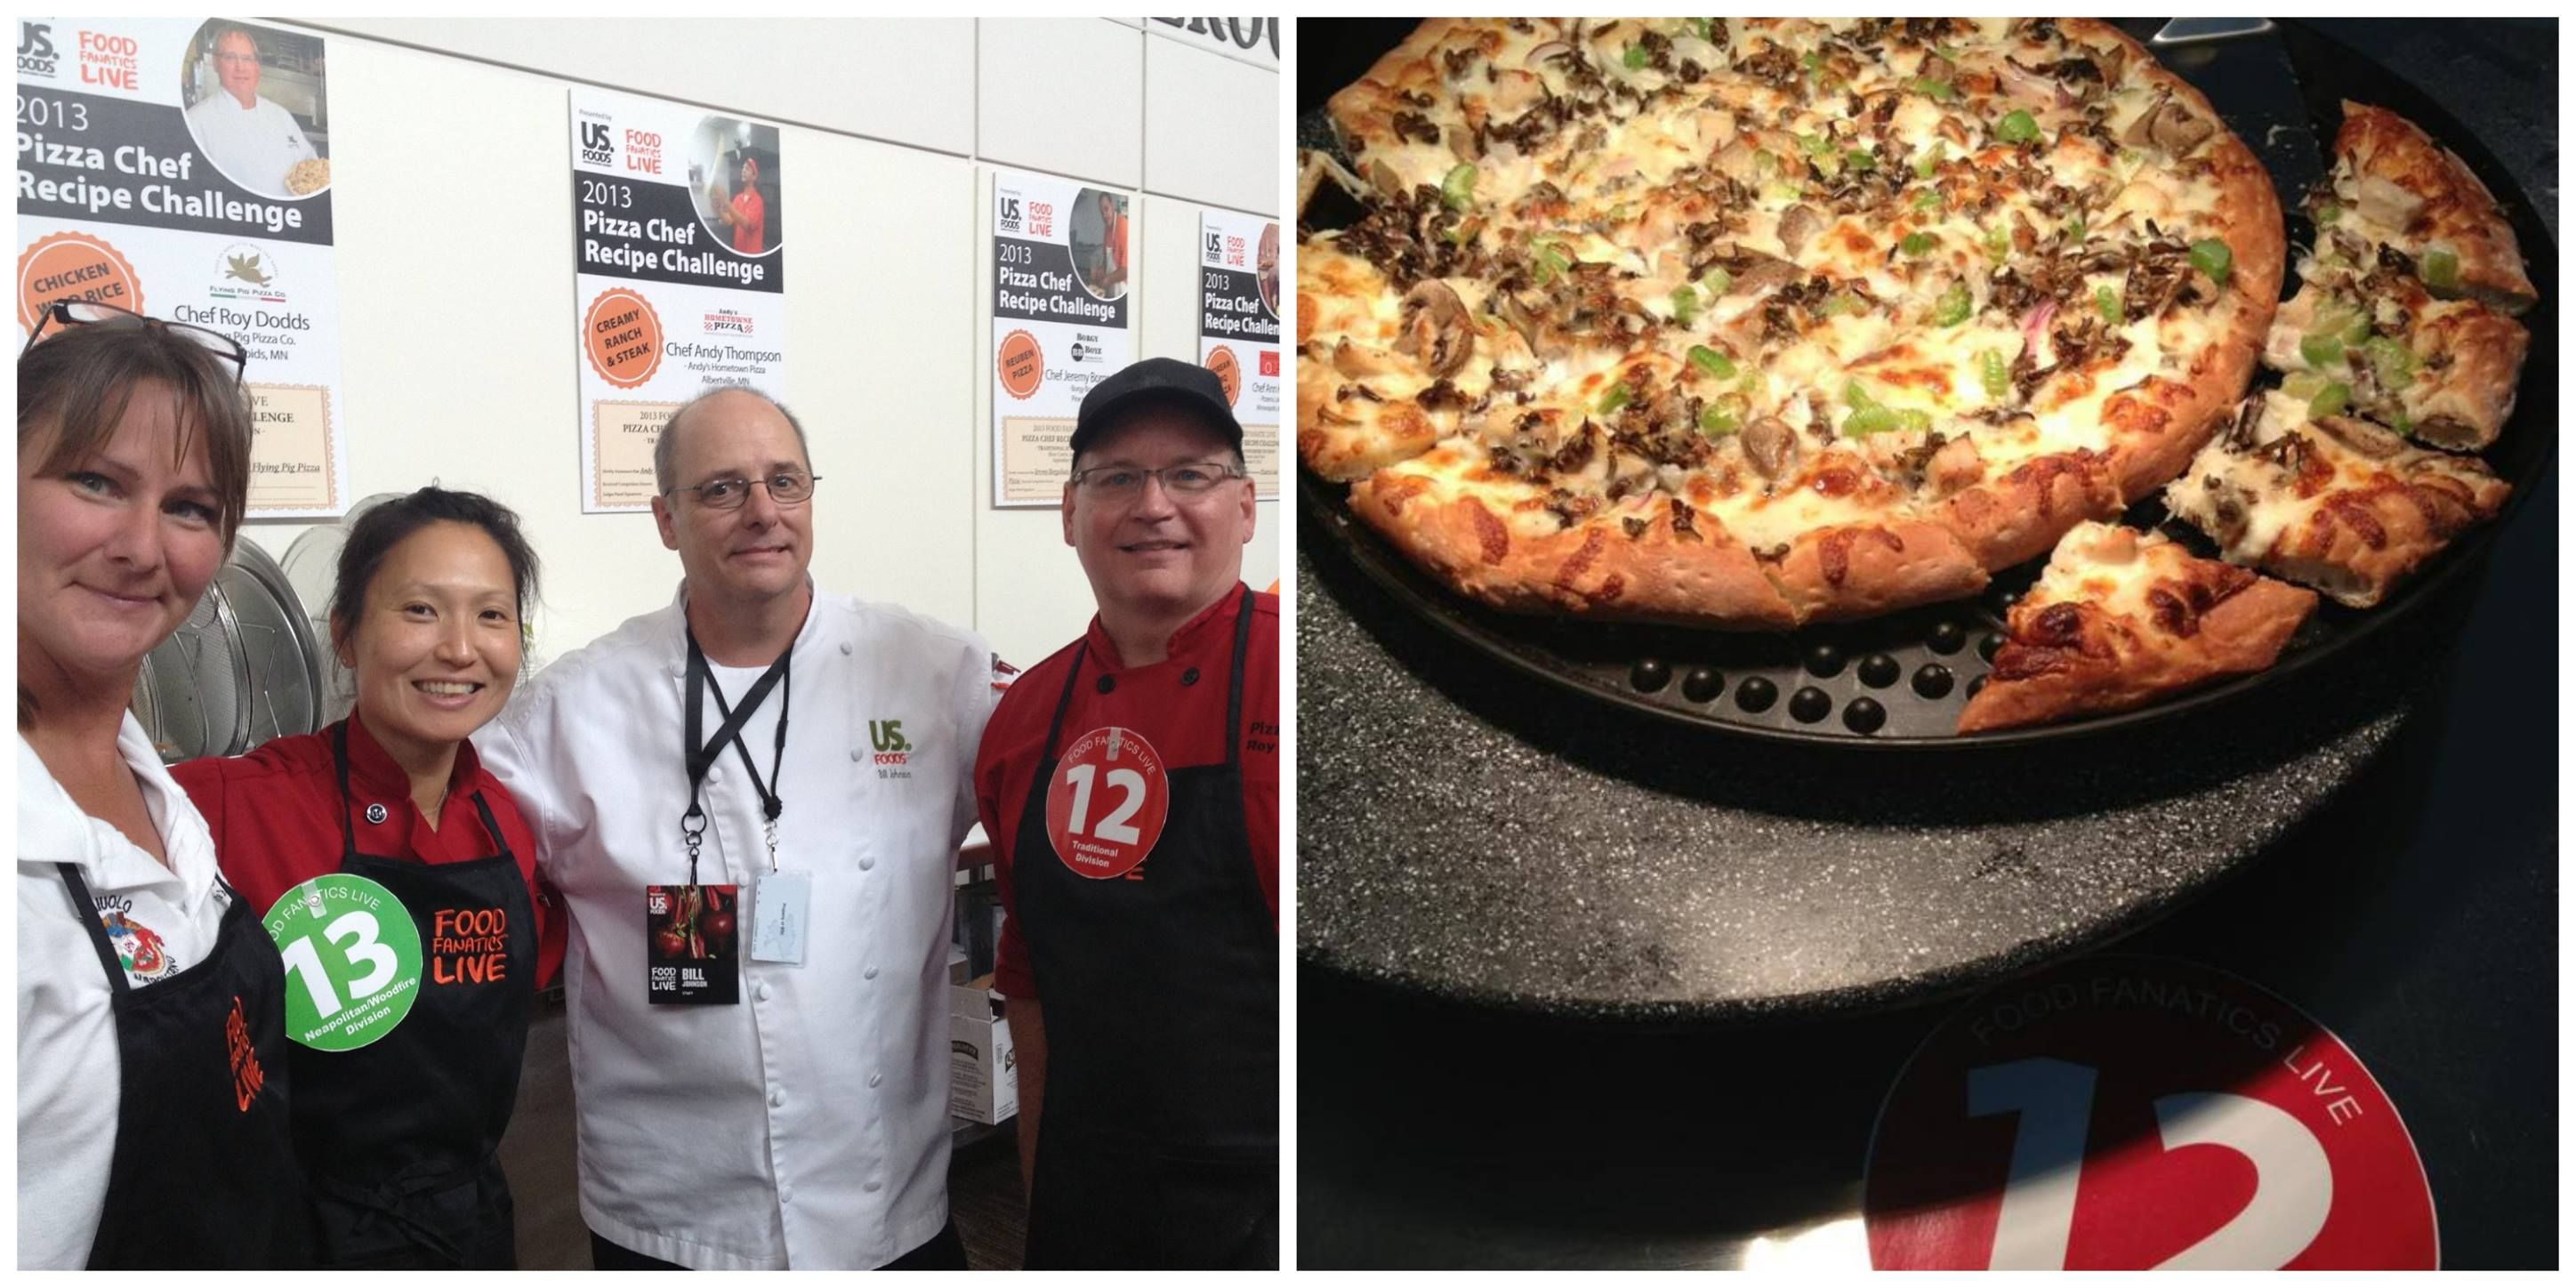 Roy won his division at the Food Fanatics Live Culinary Expo. There were two categories in the Pizza Recipe challenge: Traditional and Neapolitan/Wood fire. Roy won the traditional category, and Ann from Pizzeria Lola in MPLS won the Neapolitan/Wood fire category!!